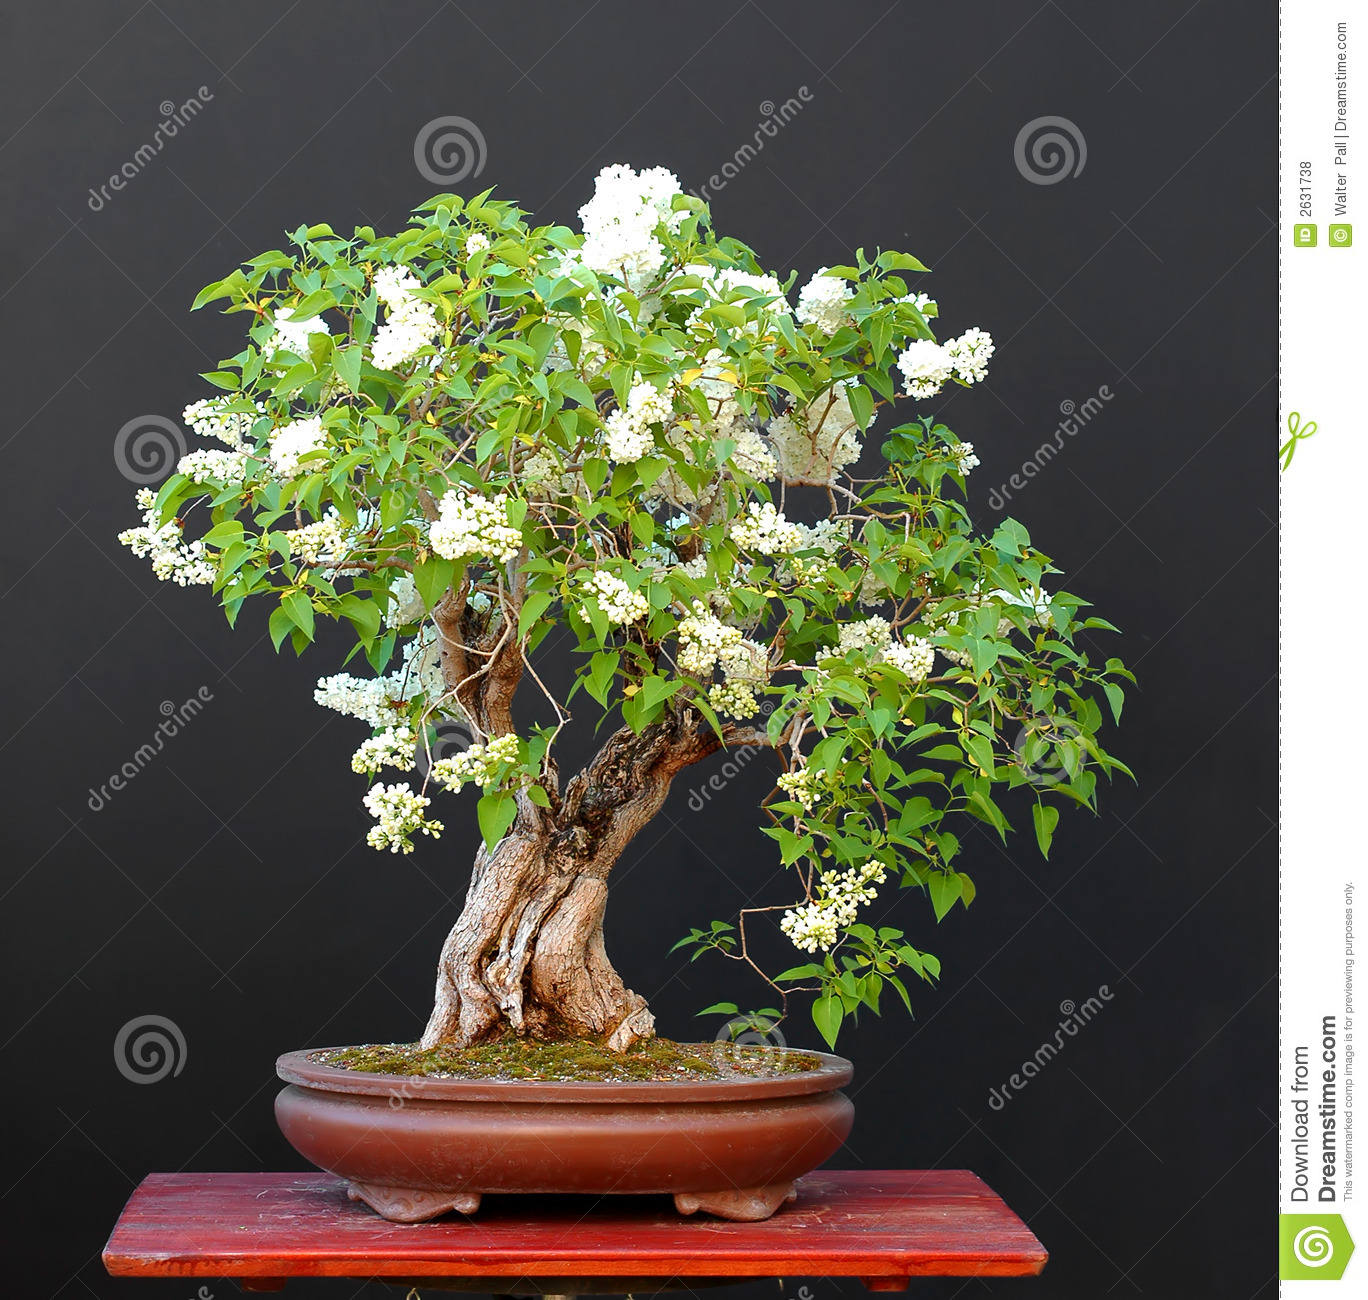 lilac bonsai in blom stock photo image of spring tree. Black Bedroom Furniture Sets. Home Design Ideas